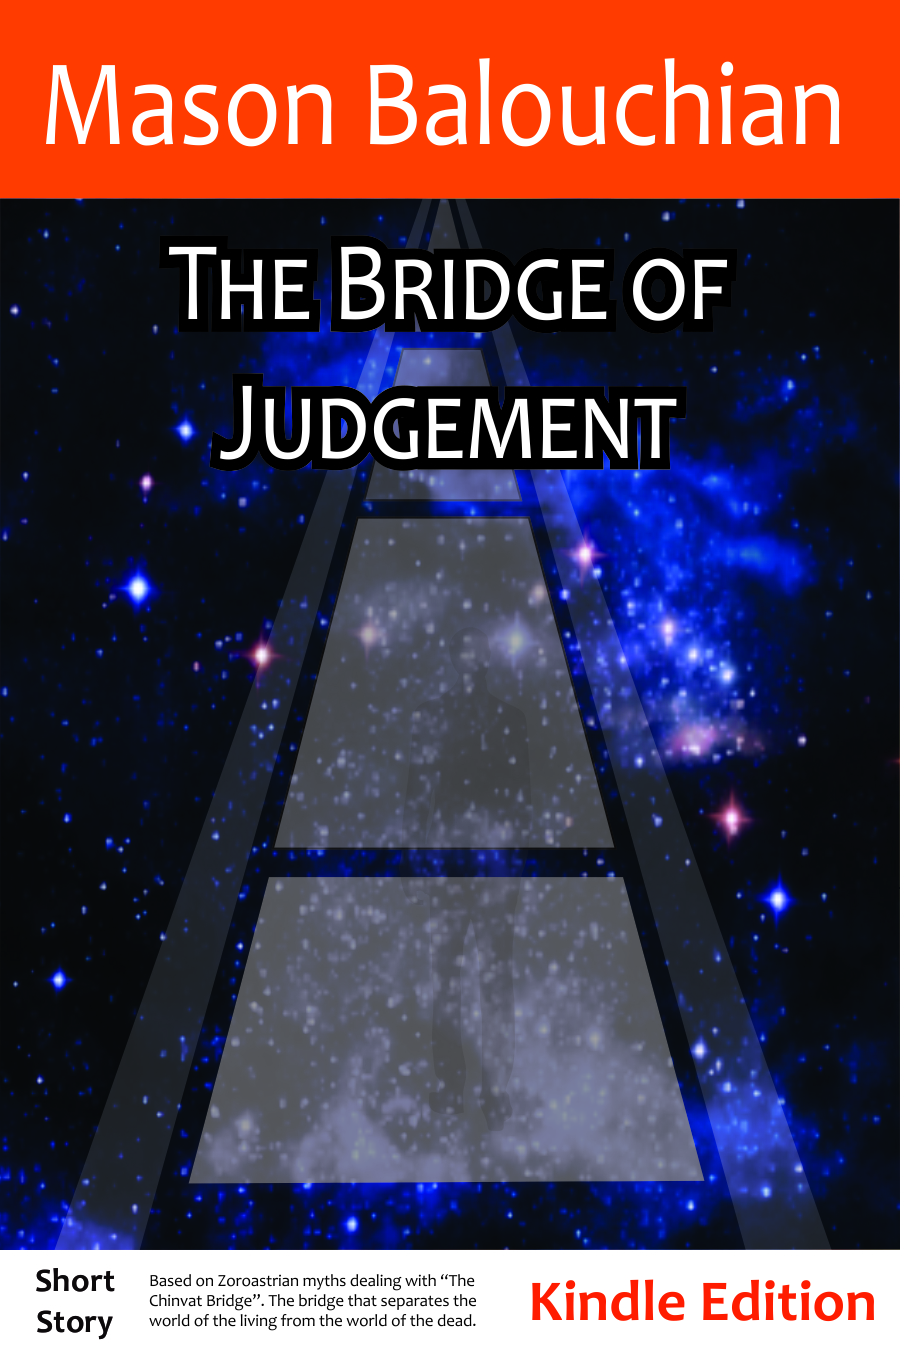 The Bridge of Judgement